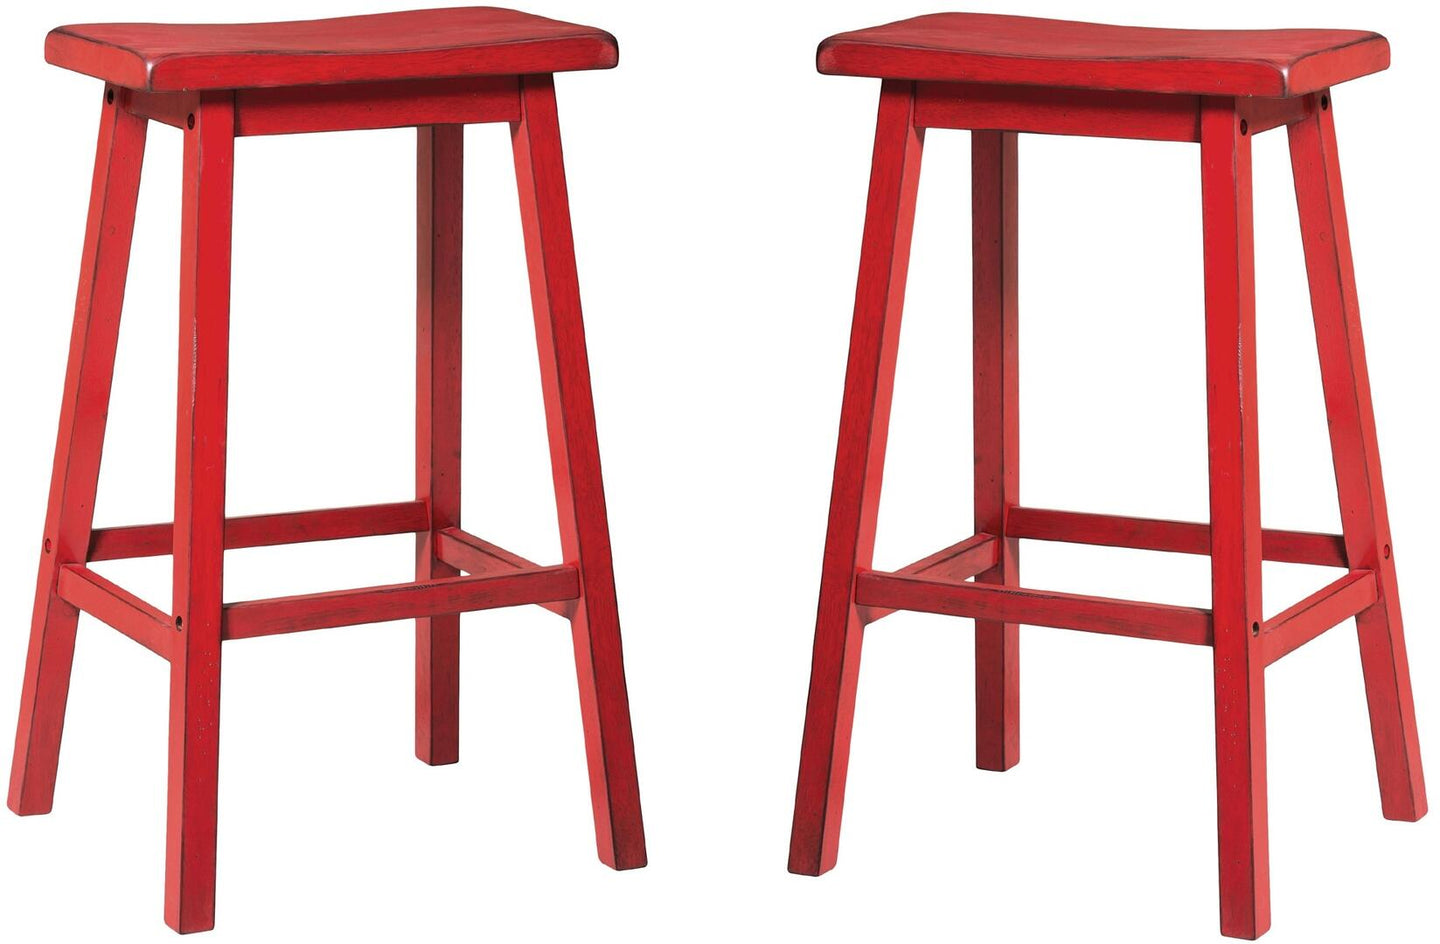 Acme Gaucho Antique Red Wood Finish 2 Piece Bar Stool